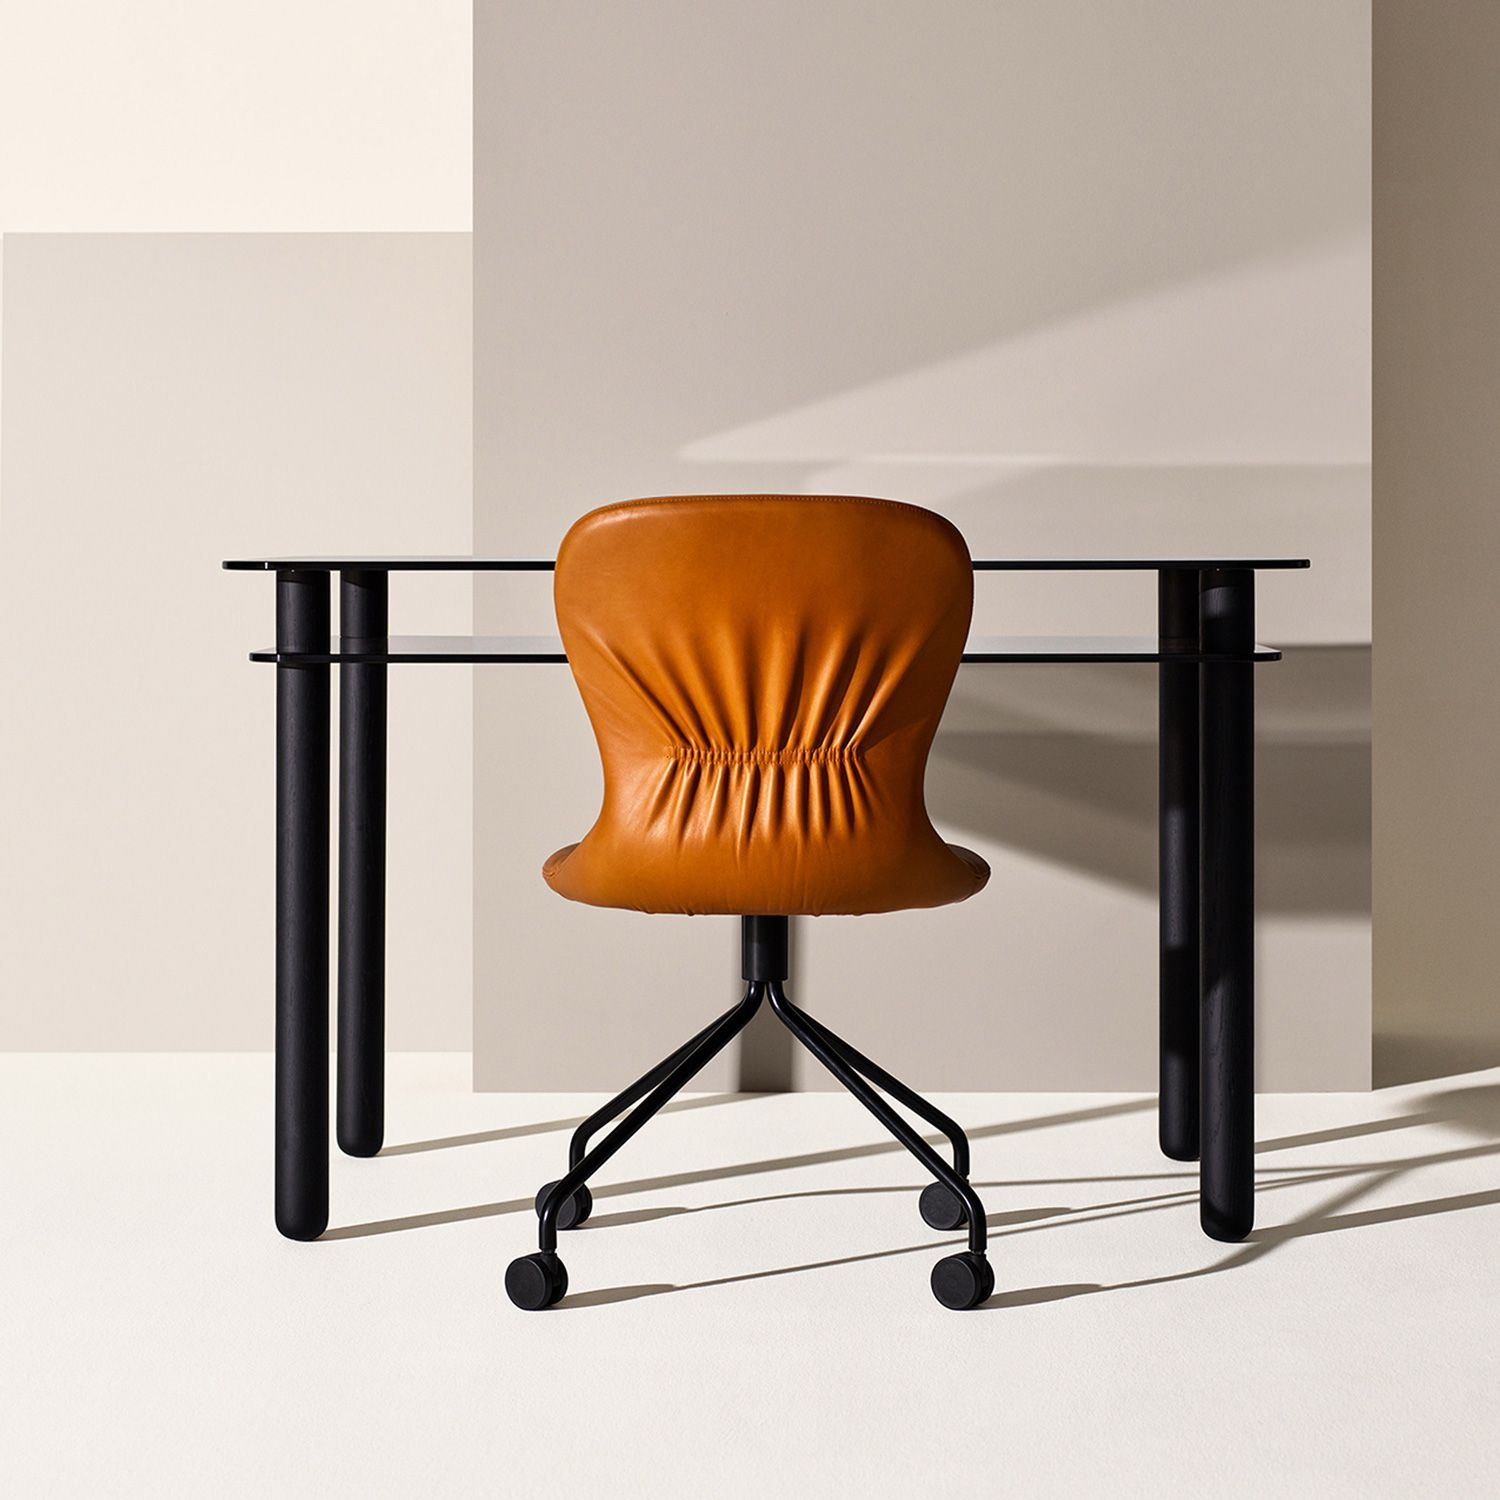 Fogias New Collection At Stockholm Furniture Fair 2018 - Yellowtrace